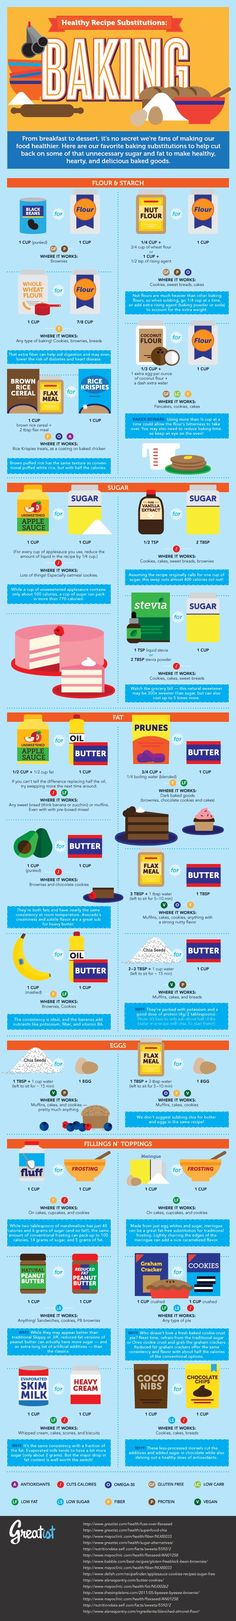 Food Hacks For Healthy Baking [Infographic]